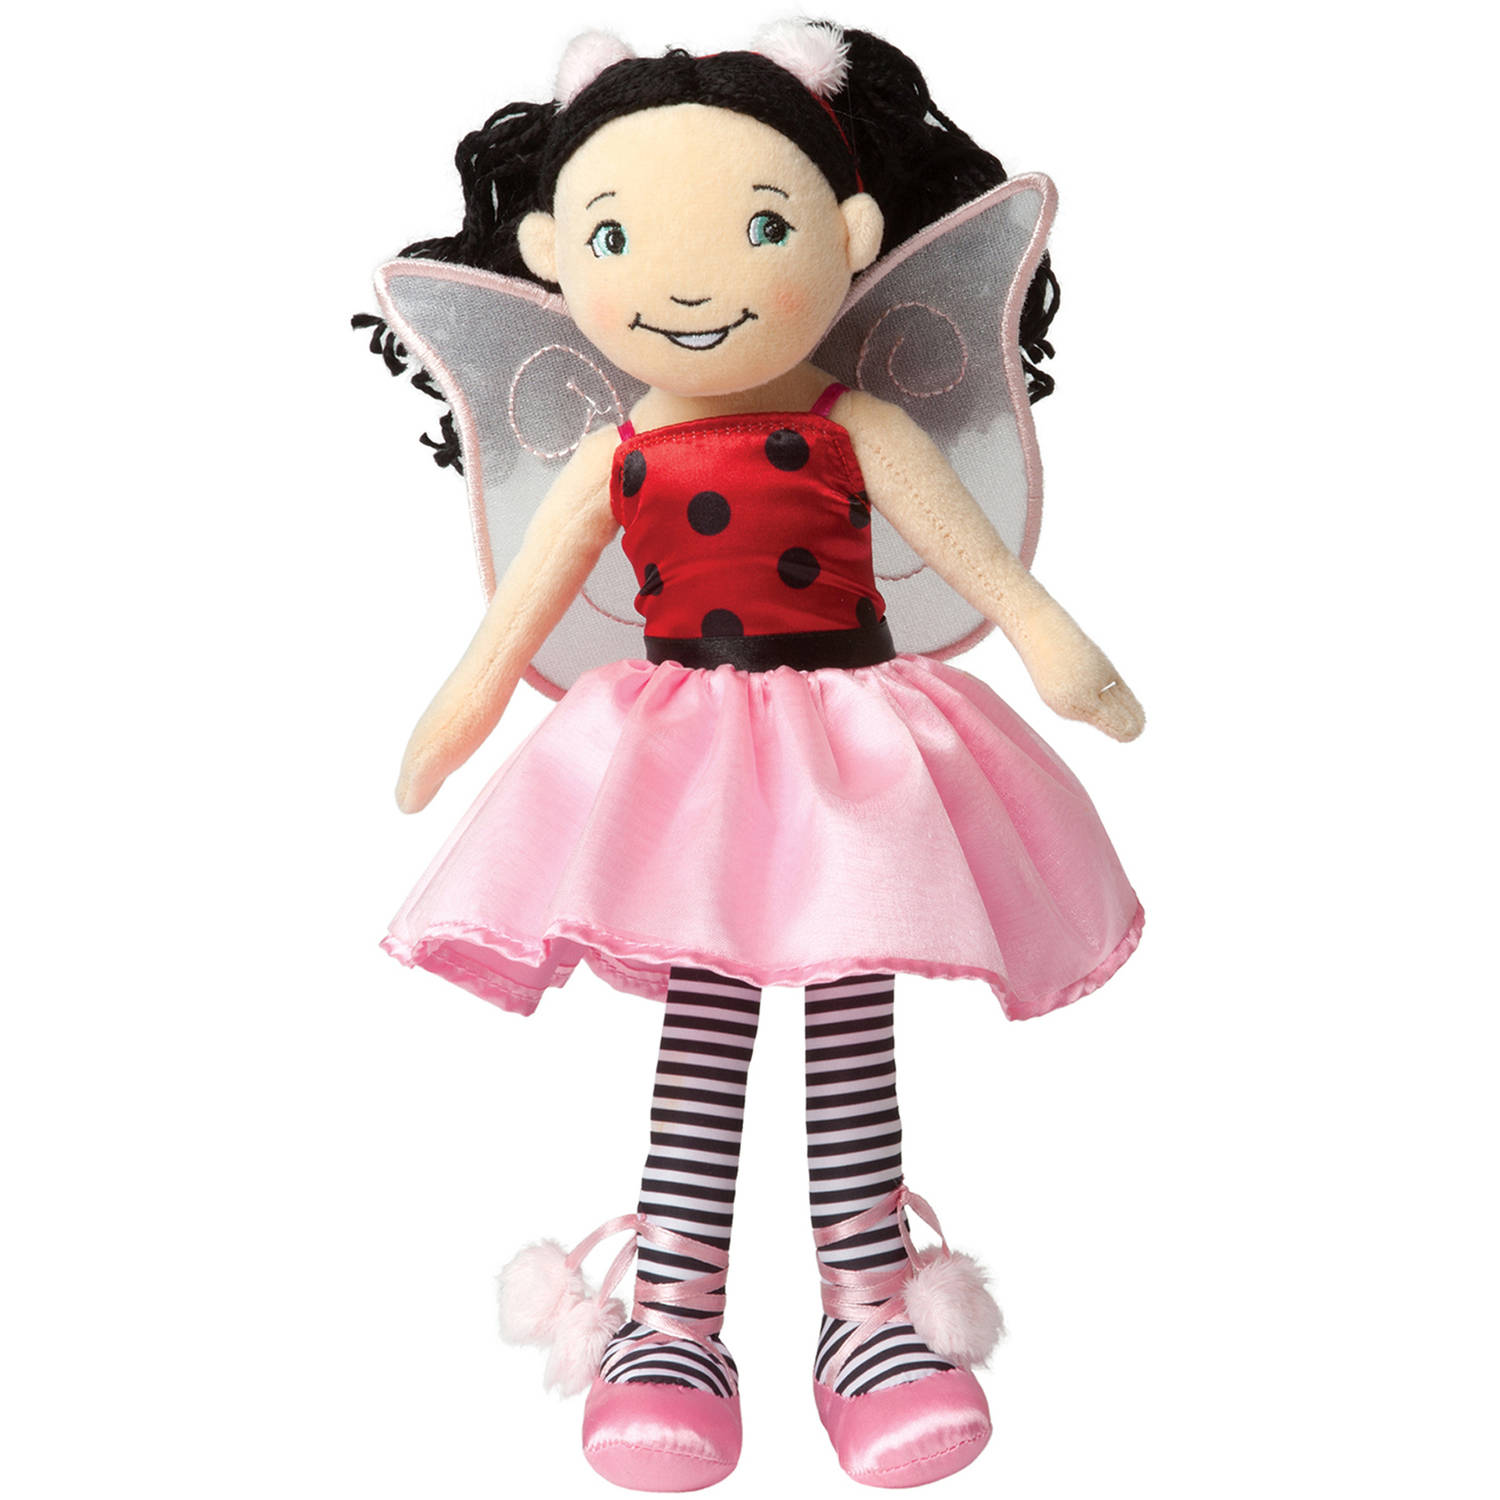 Manhattan Toy Groovy Girls Fairybelles, Lacey Ballerina Fashion Doll